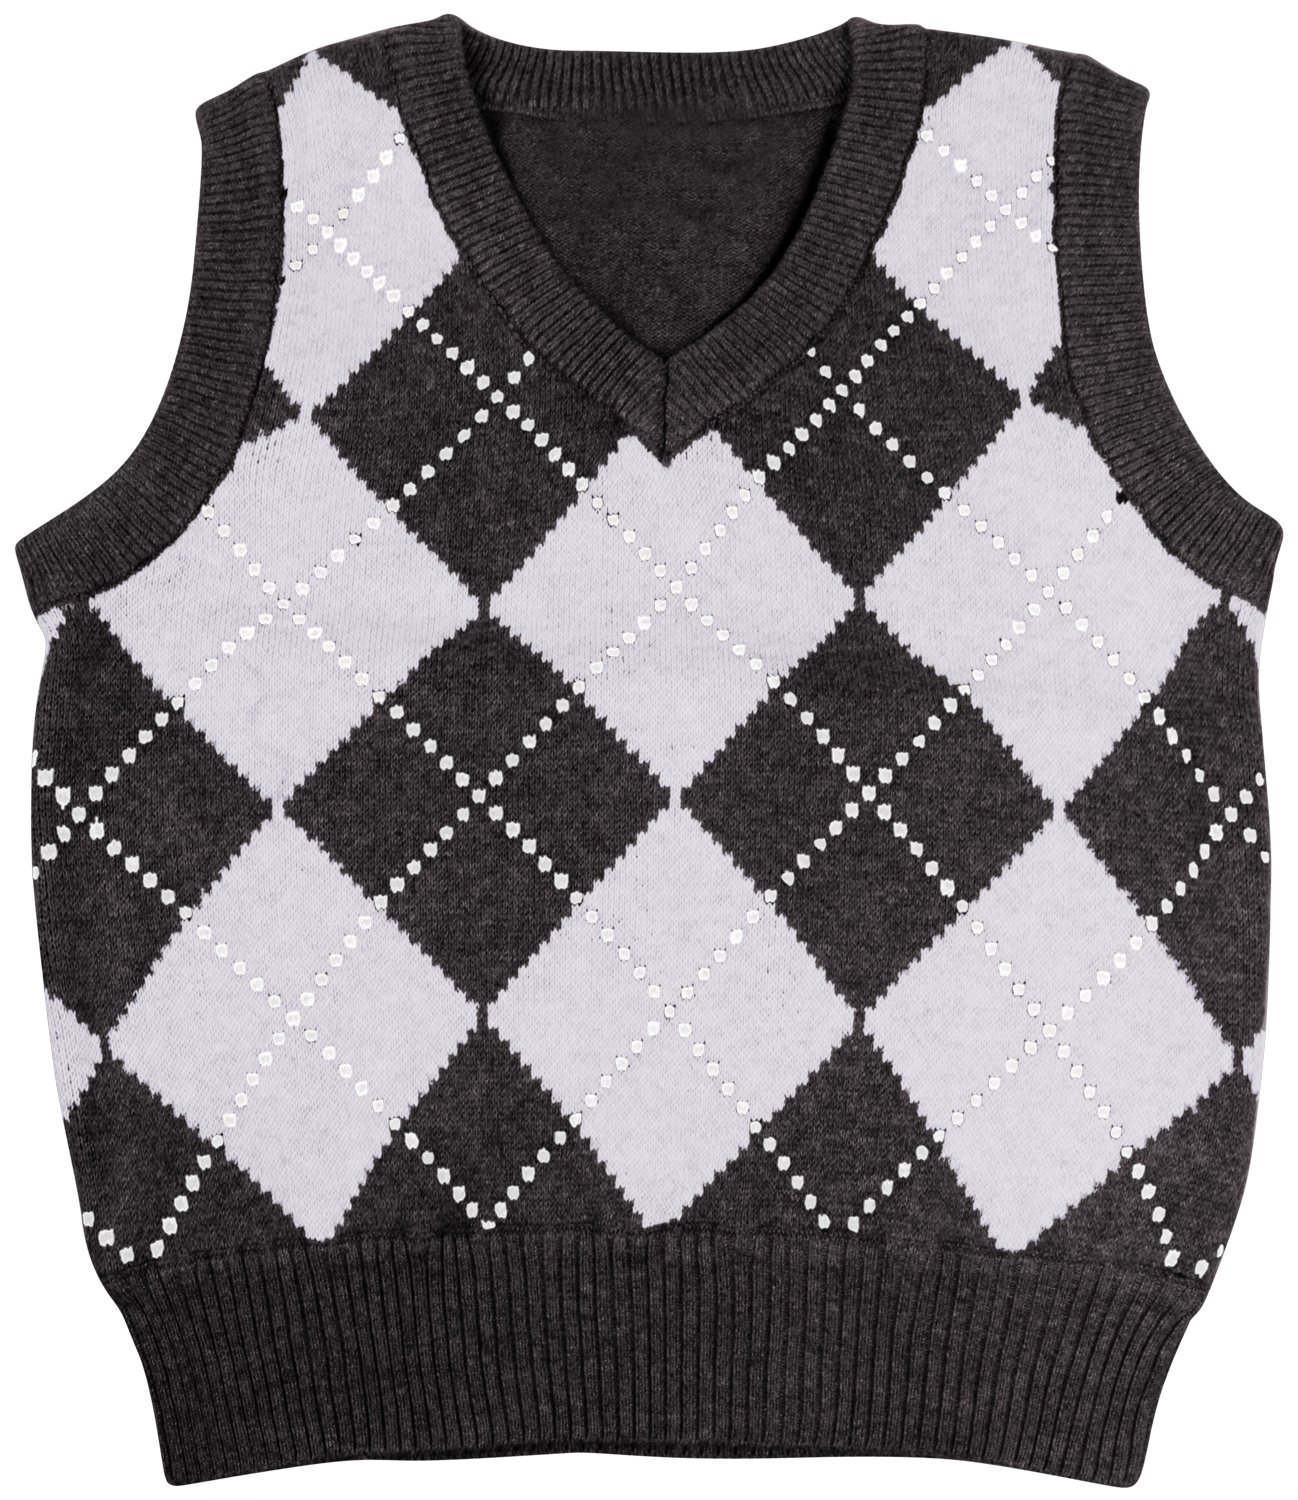 Enimay Kids Knit Sweater Vest V-Neck Argyle Pattern Pullover Black | Grey 3-Years